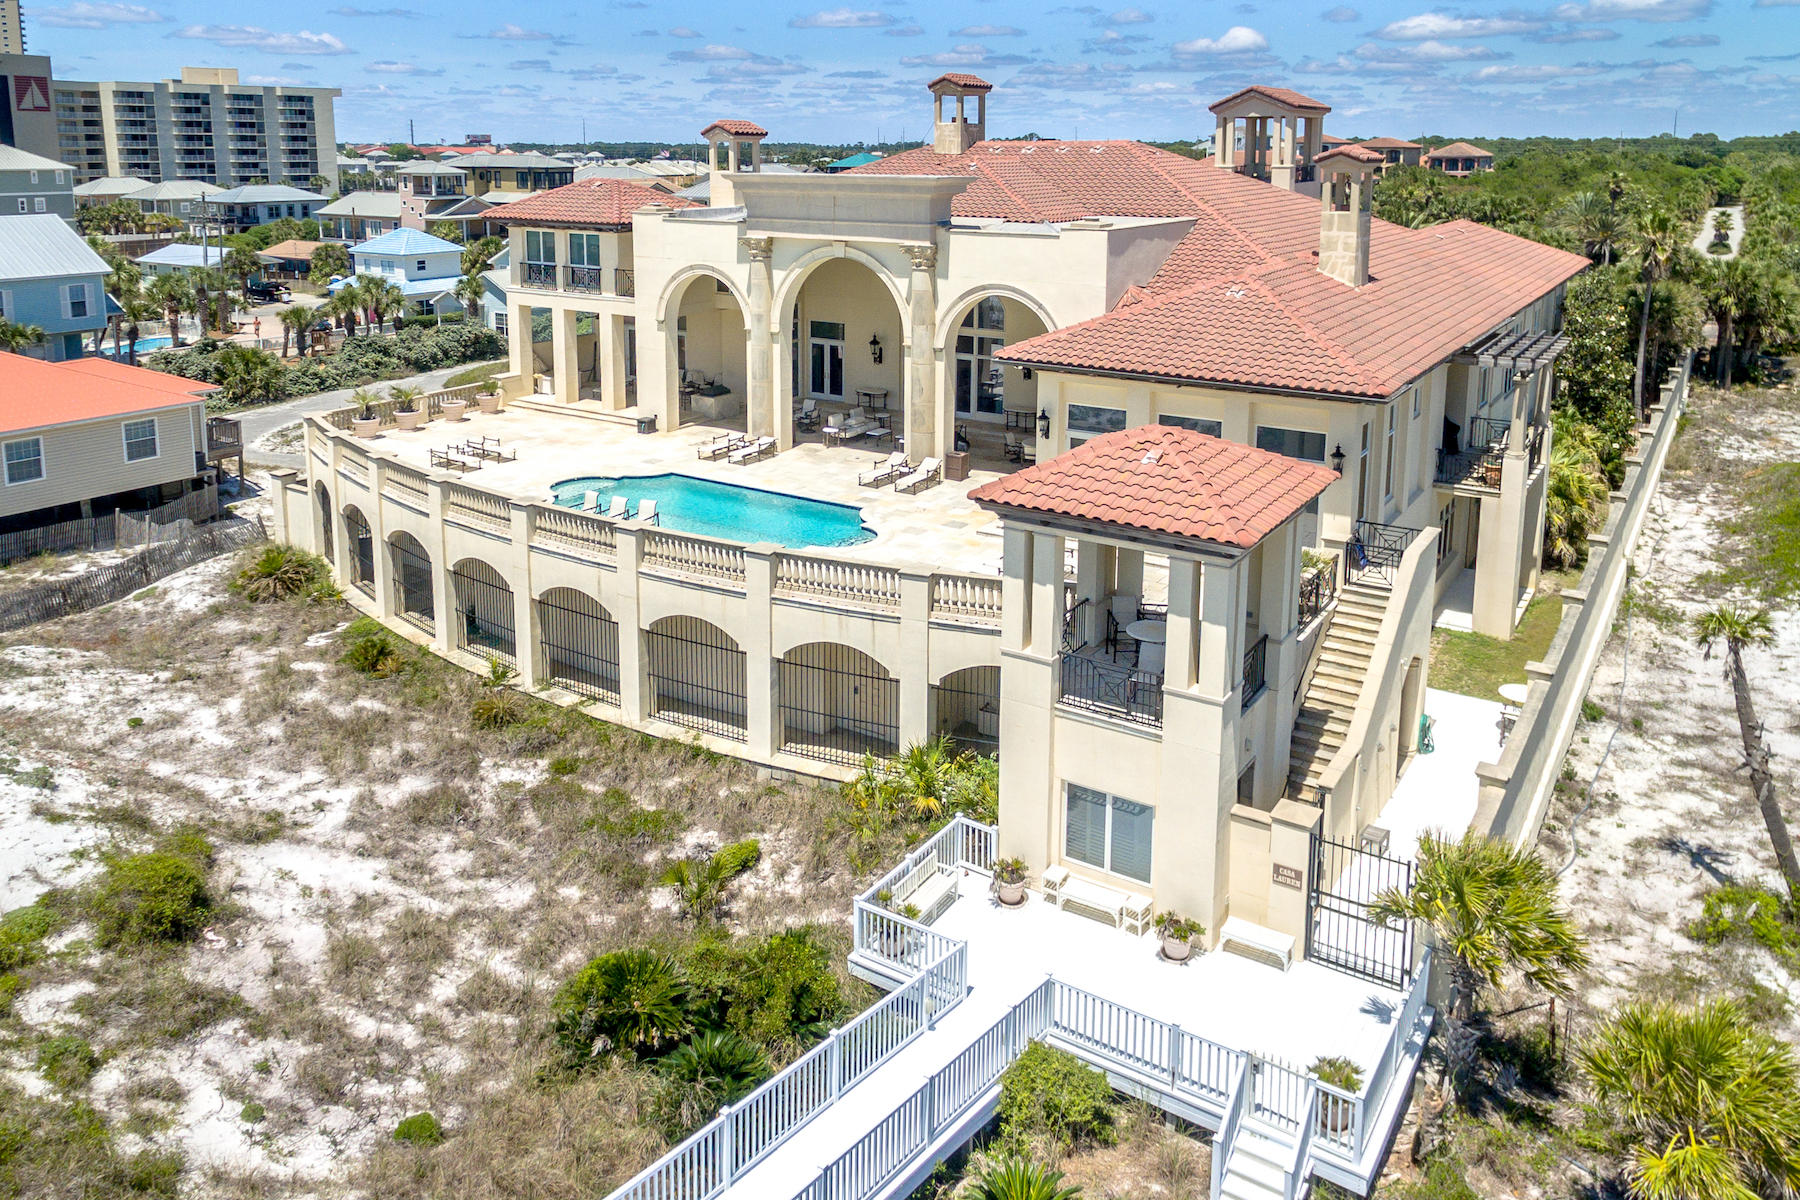 39 Sandy Dunes,Miramar Beach,Florida 32550,6 Bedrooms Bedrooms,8 BathroomsBathrooms,Detached single family,Sandy Dunes,20131126143817002353000000